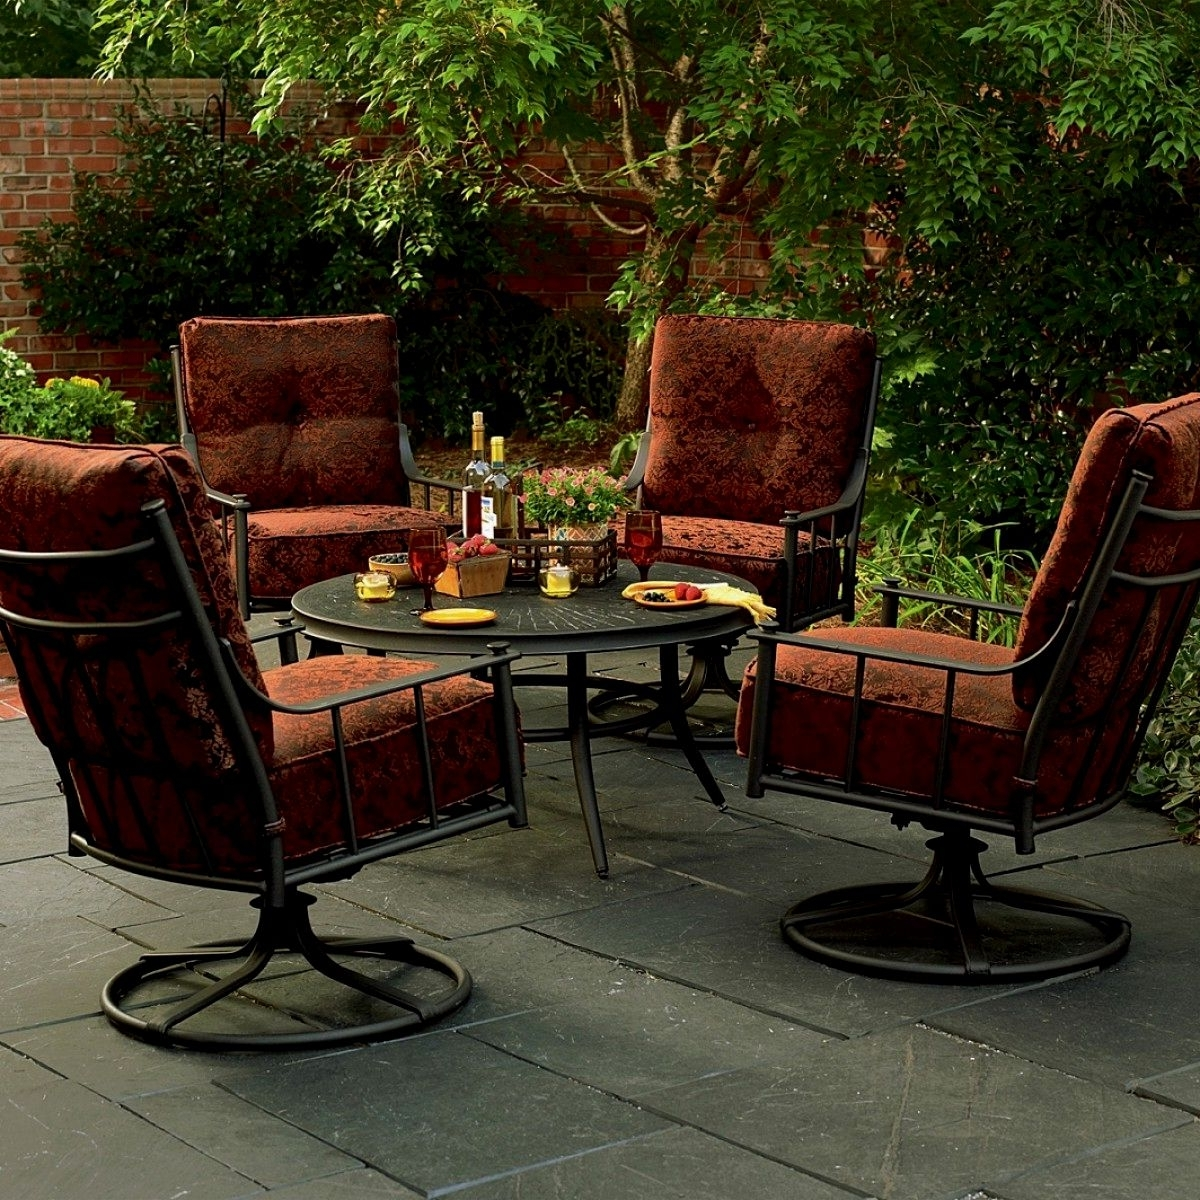 Most Recently Released Patio Conversation Sets Under 200 In Lovely Cheap Patio Furniture Sets Under 200 Image (View 5 of 15)